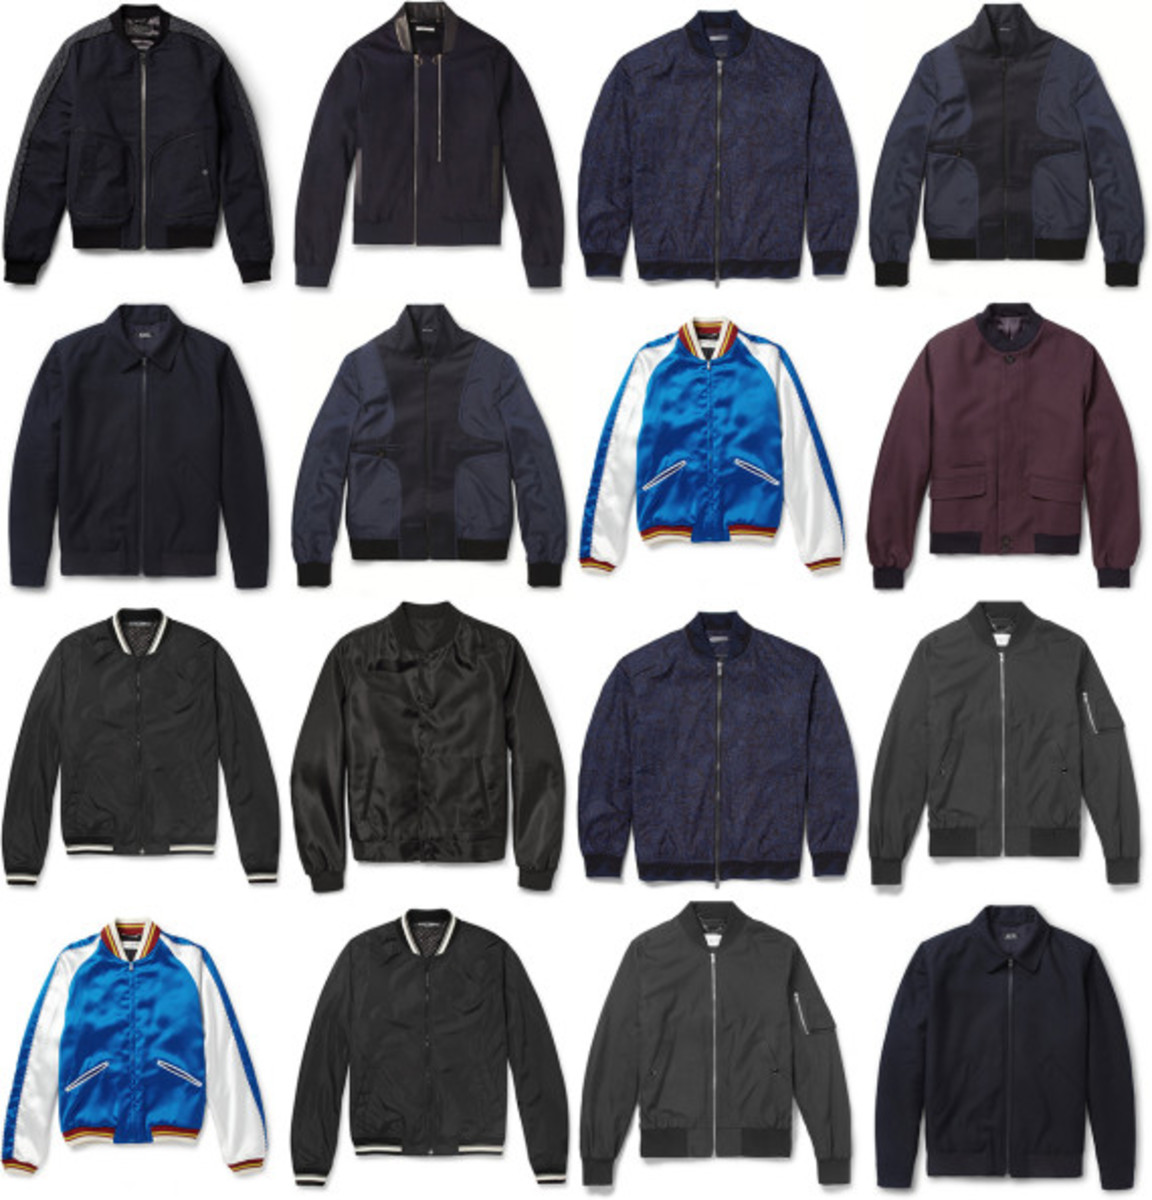 Spring 2014 Trends - Top 10 Bomber Jackets Available Now - 0